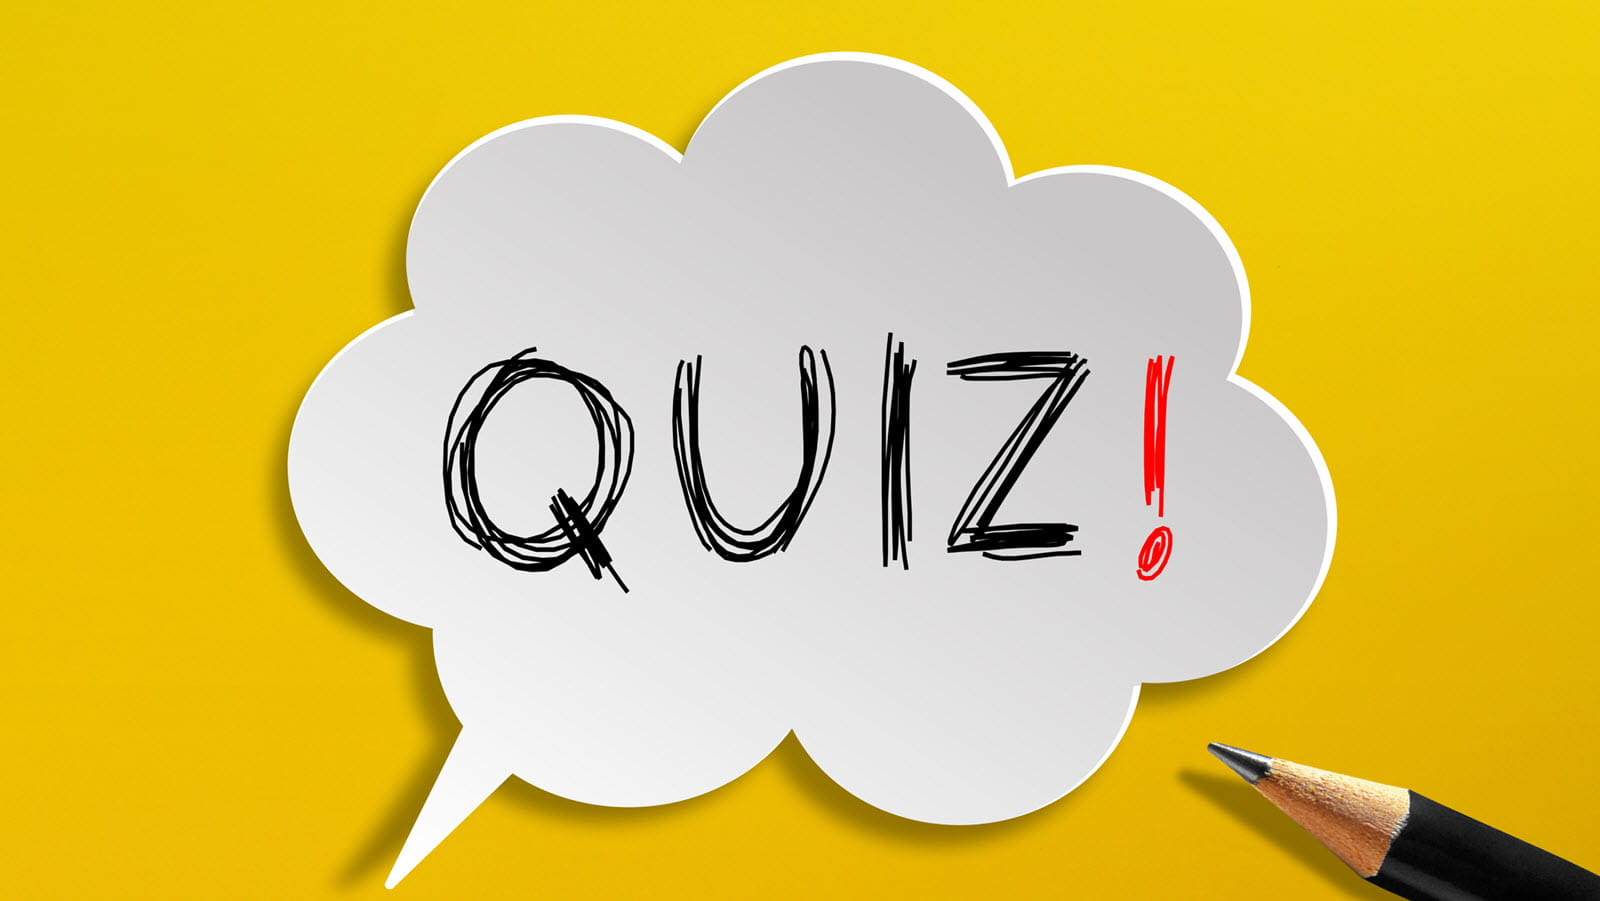 The word quiz in a cartoon bubble on yellow background